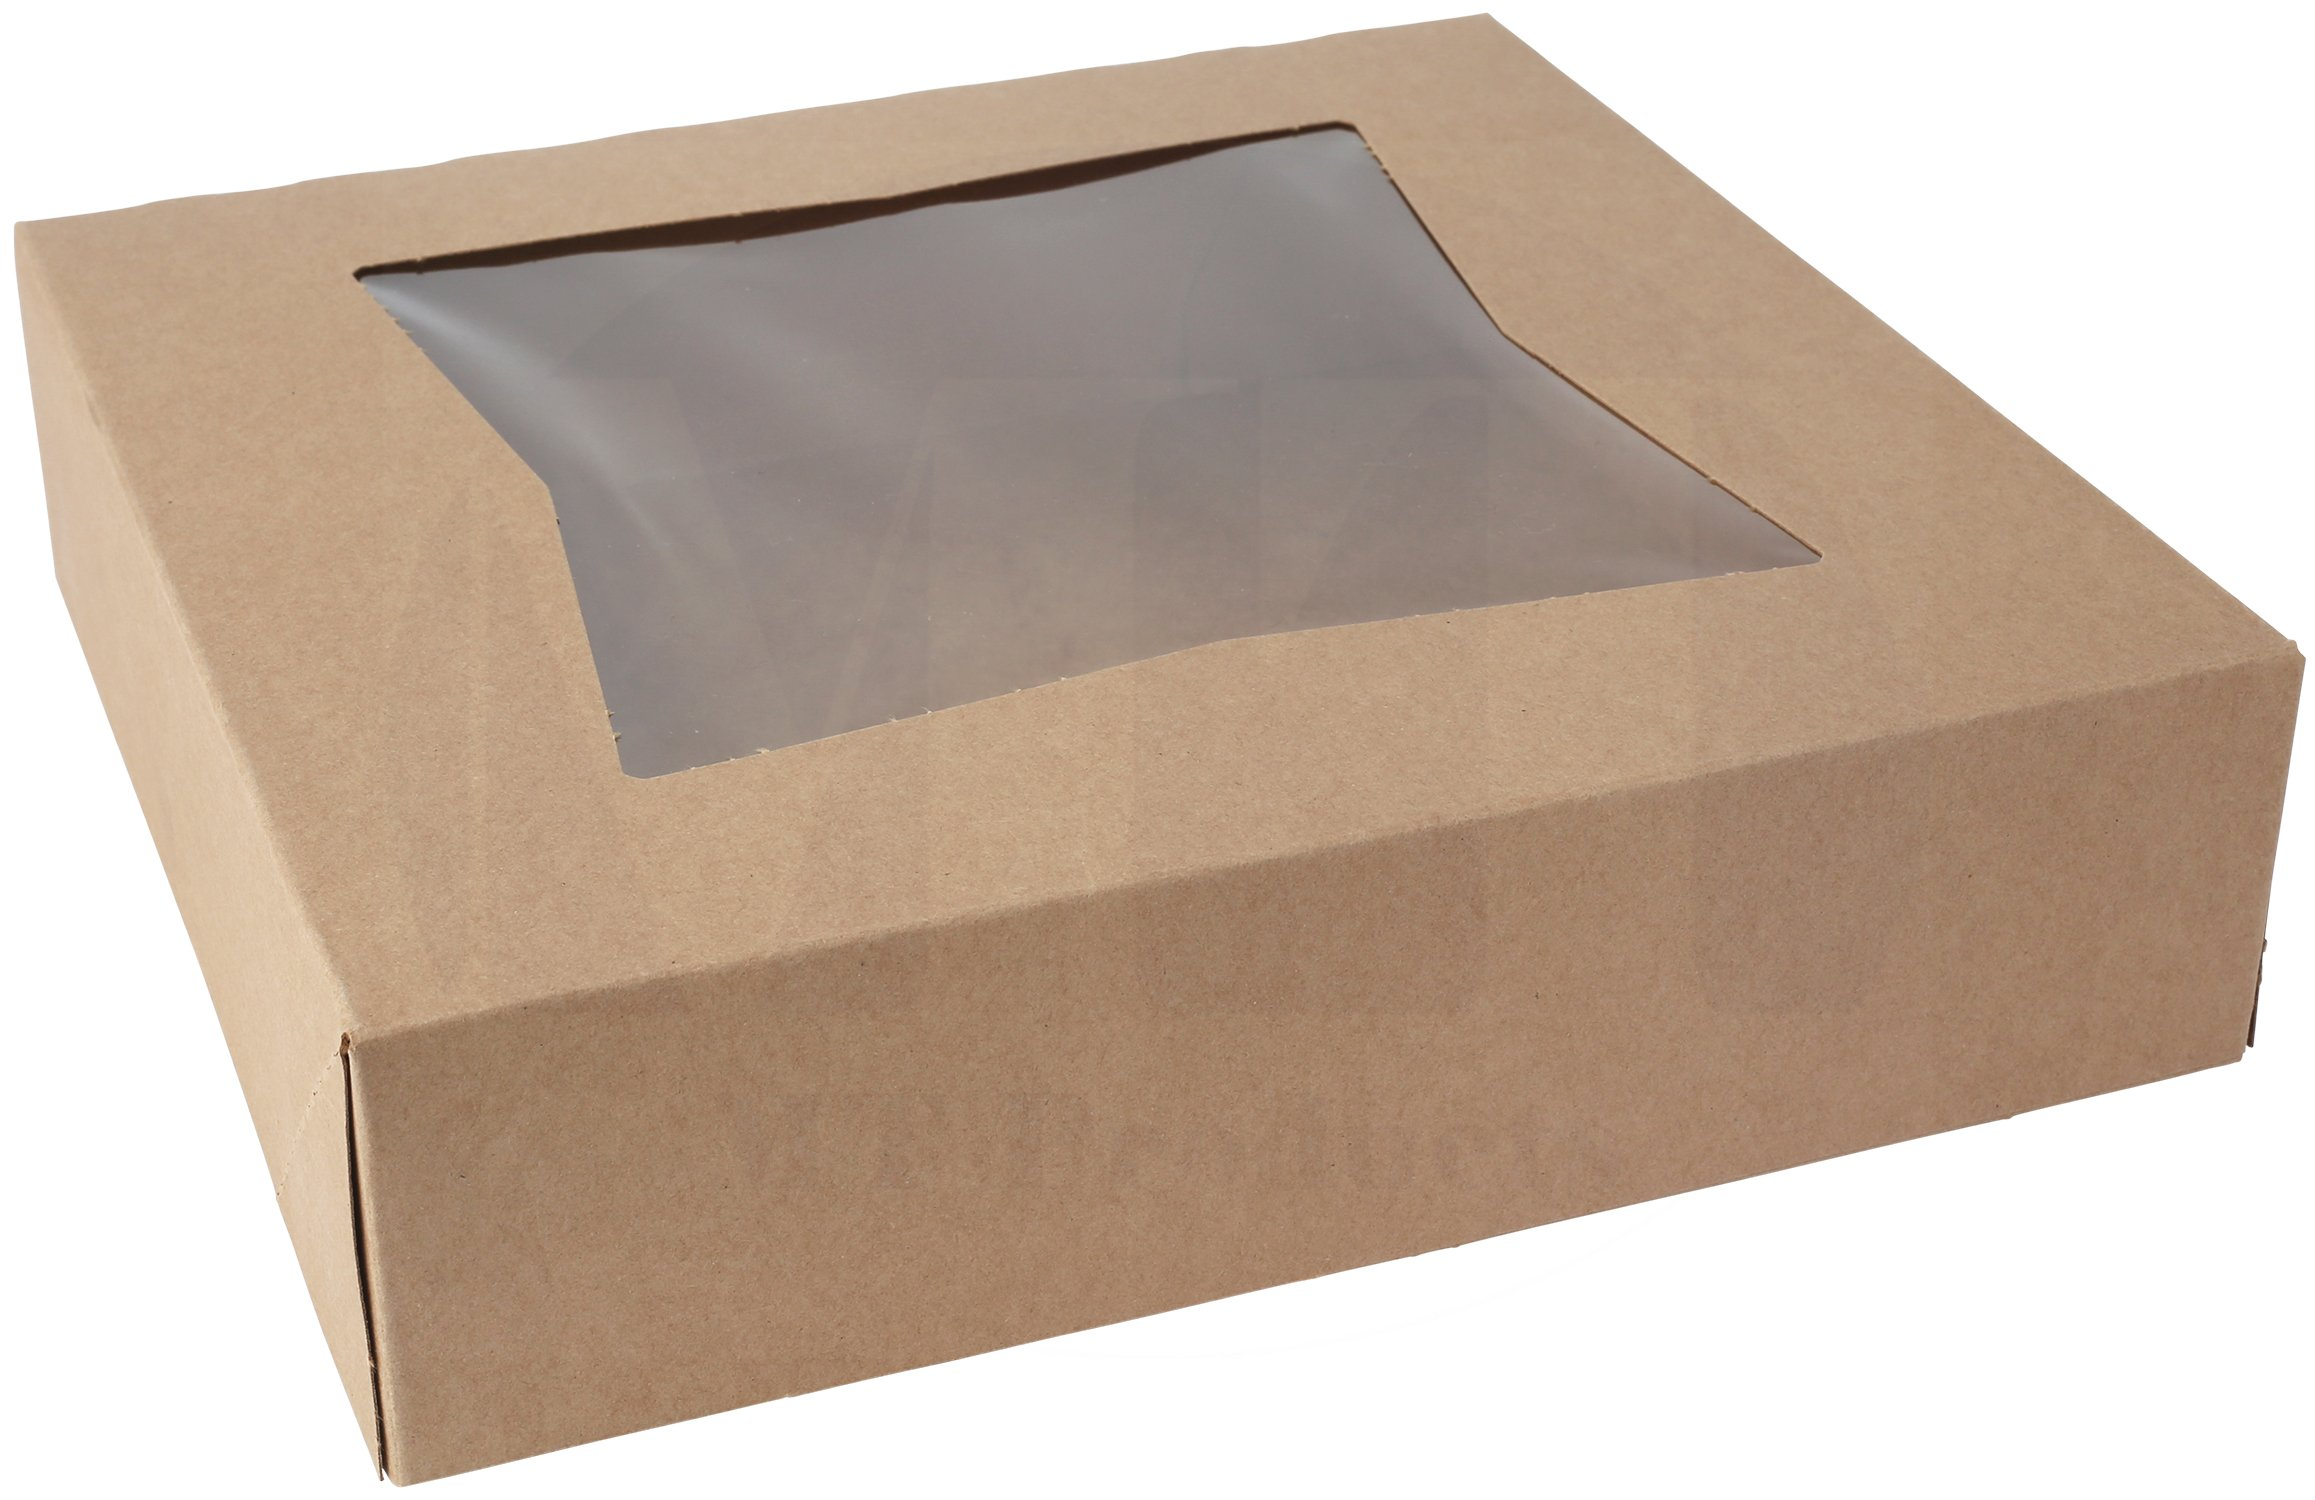 8'' Length x 8'' Width x 2 1/2'' Height Kraft Paperboard Auto-Popup Window Pie/Bakery Box by MT Products (Pack of 15)